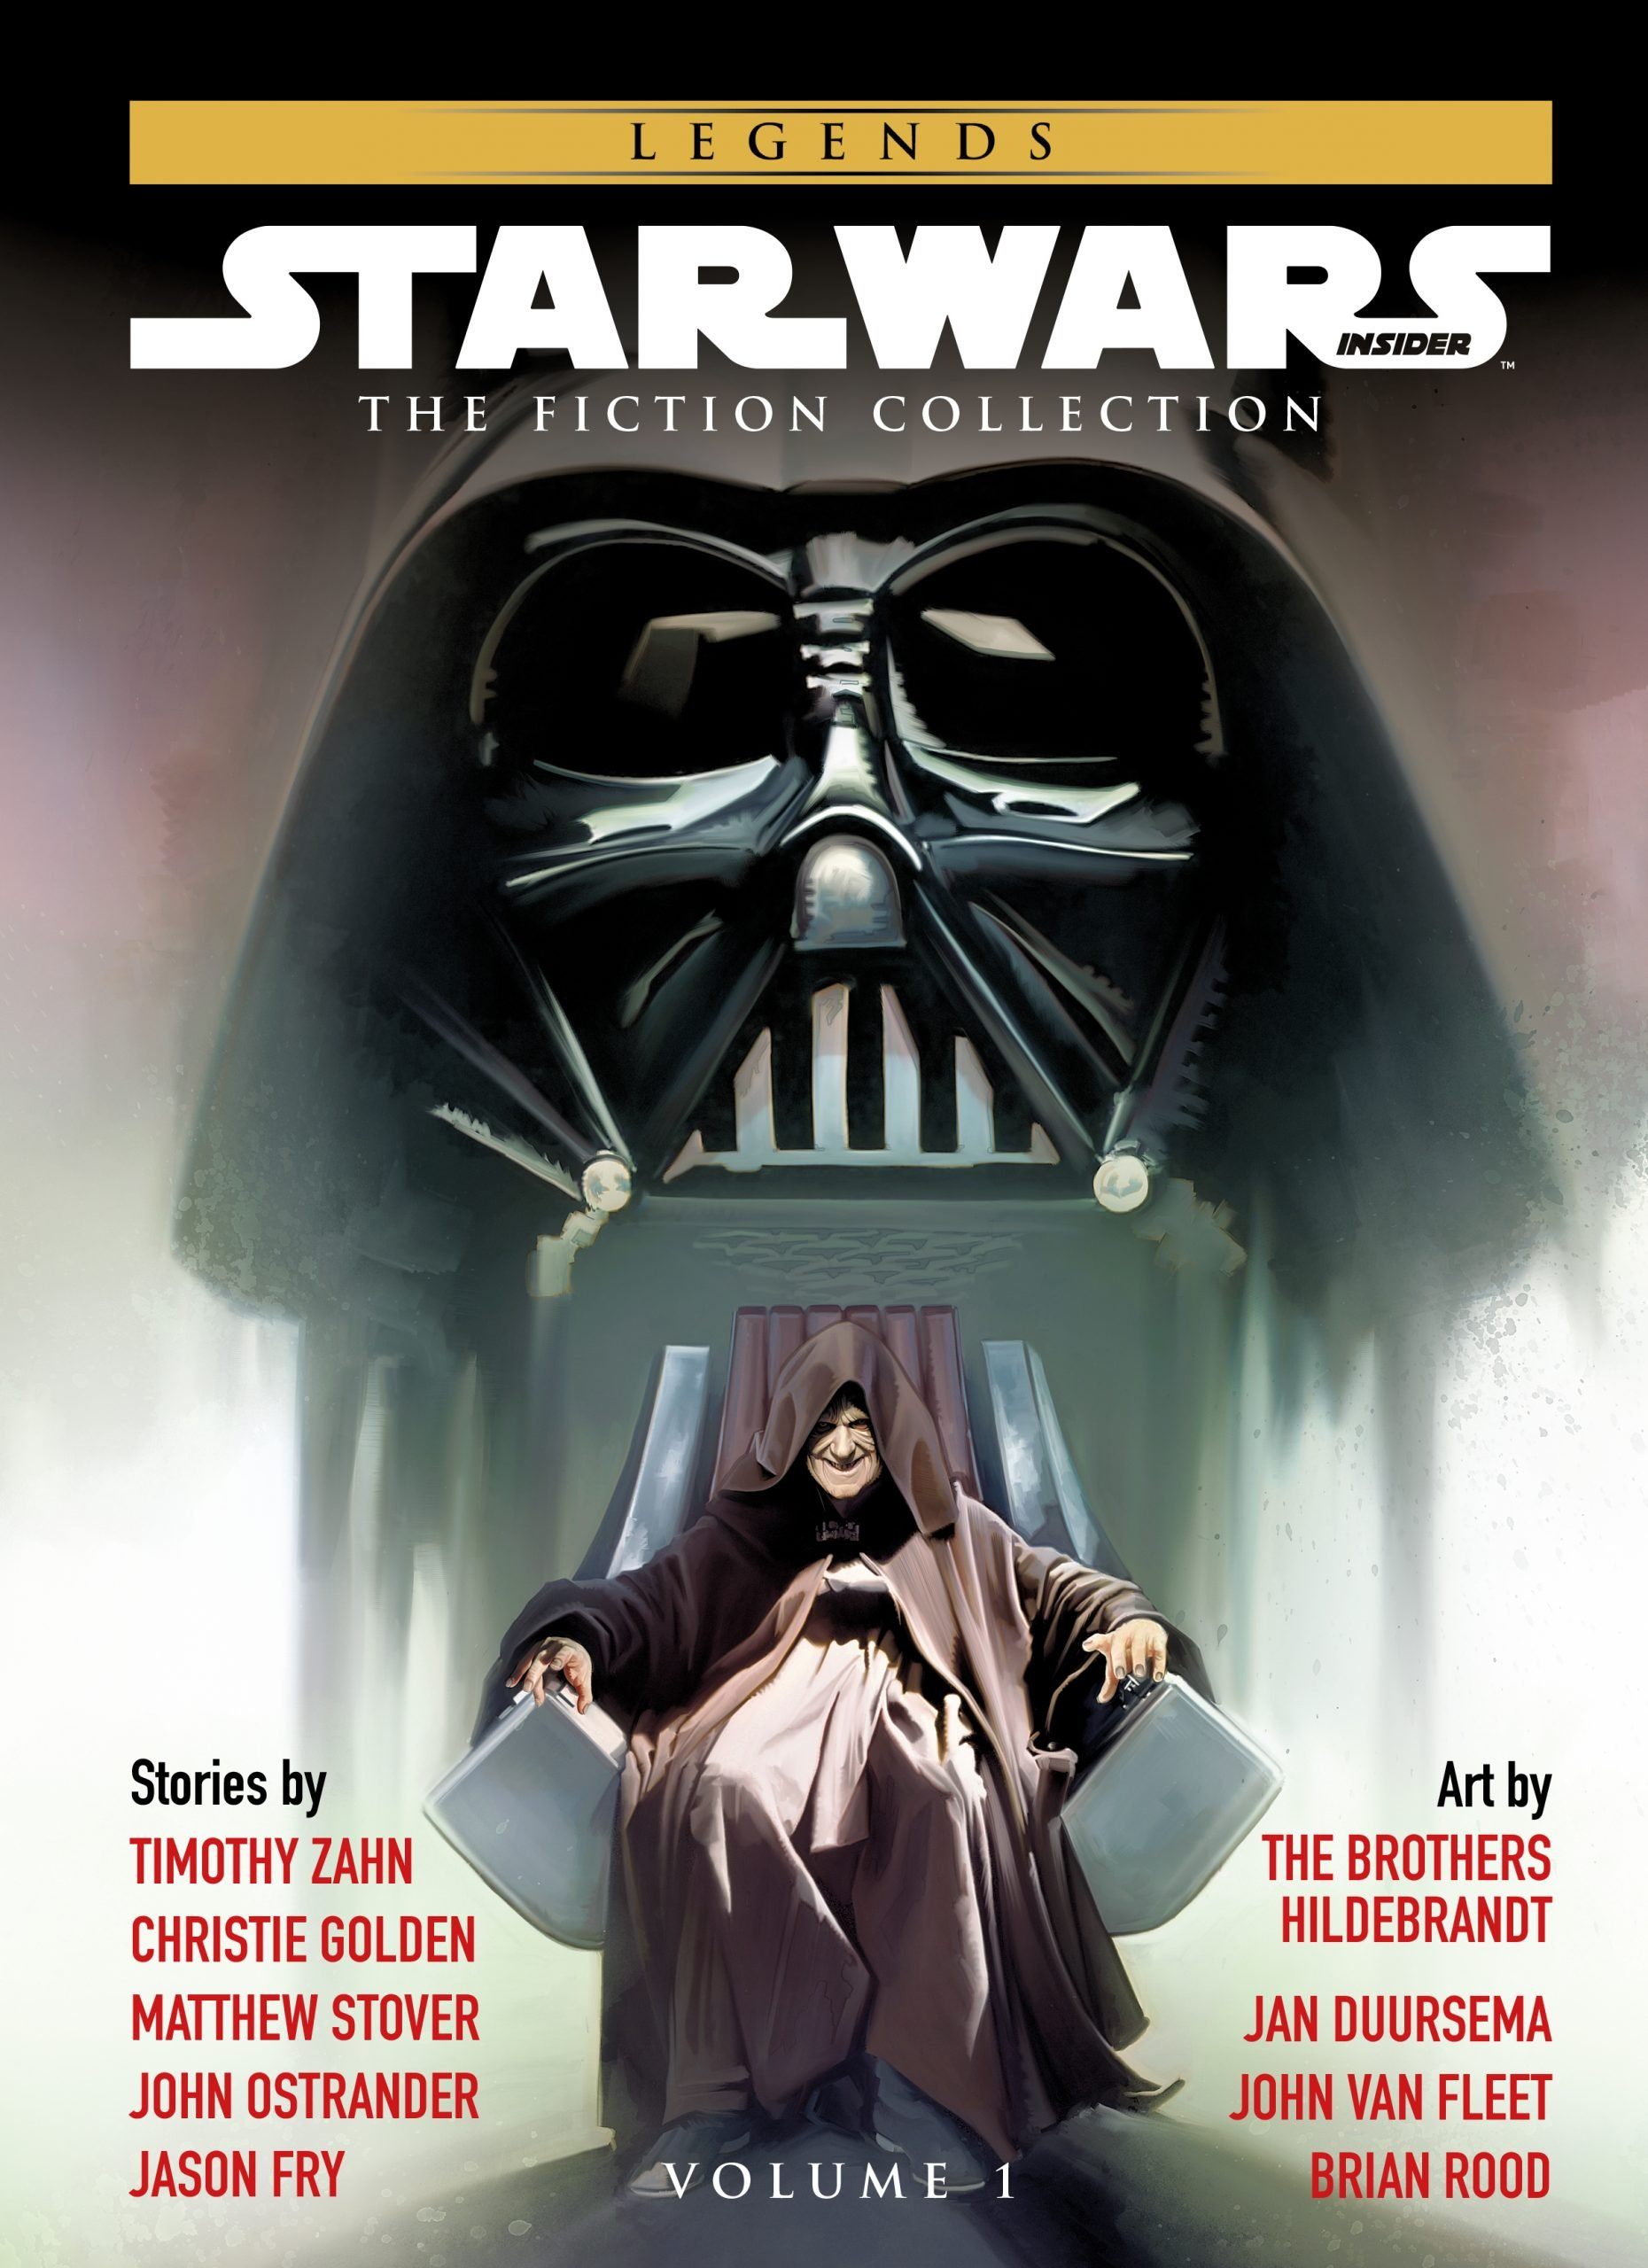 The Legends Renaissance Continues in Star Wars Insider: Fiction Collection Volume One